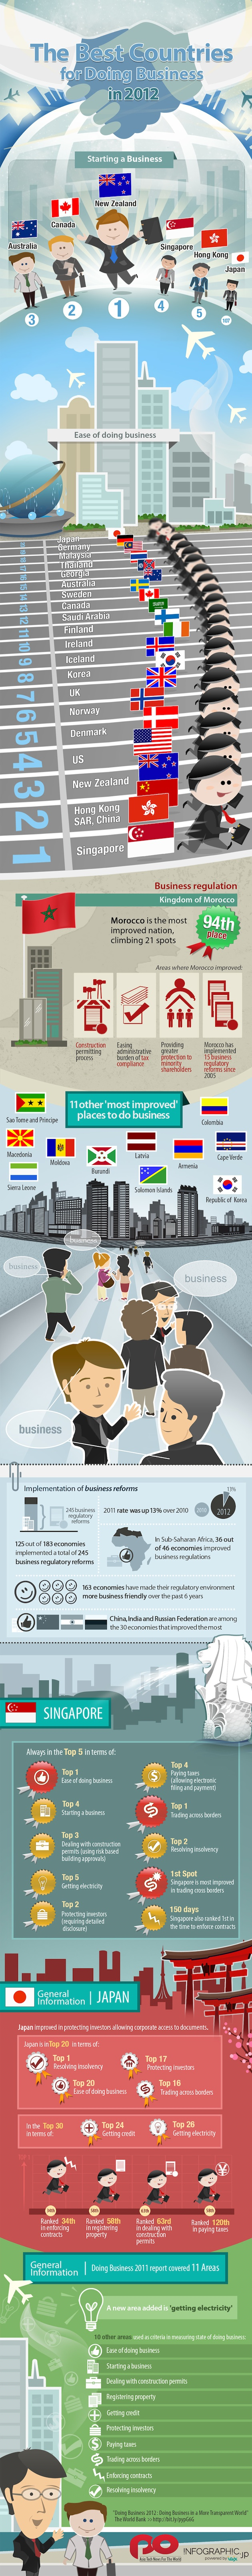 Doing_Business_2012 Infographic